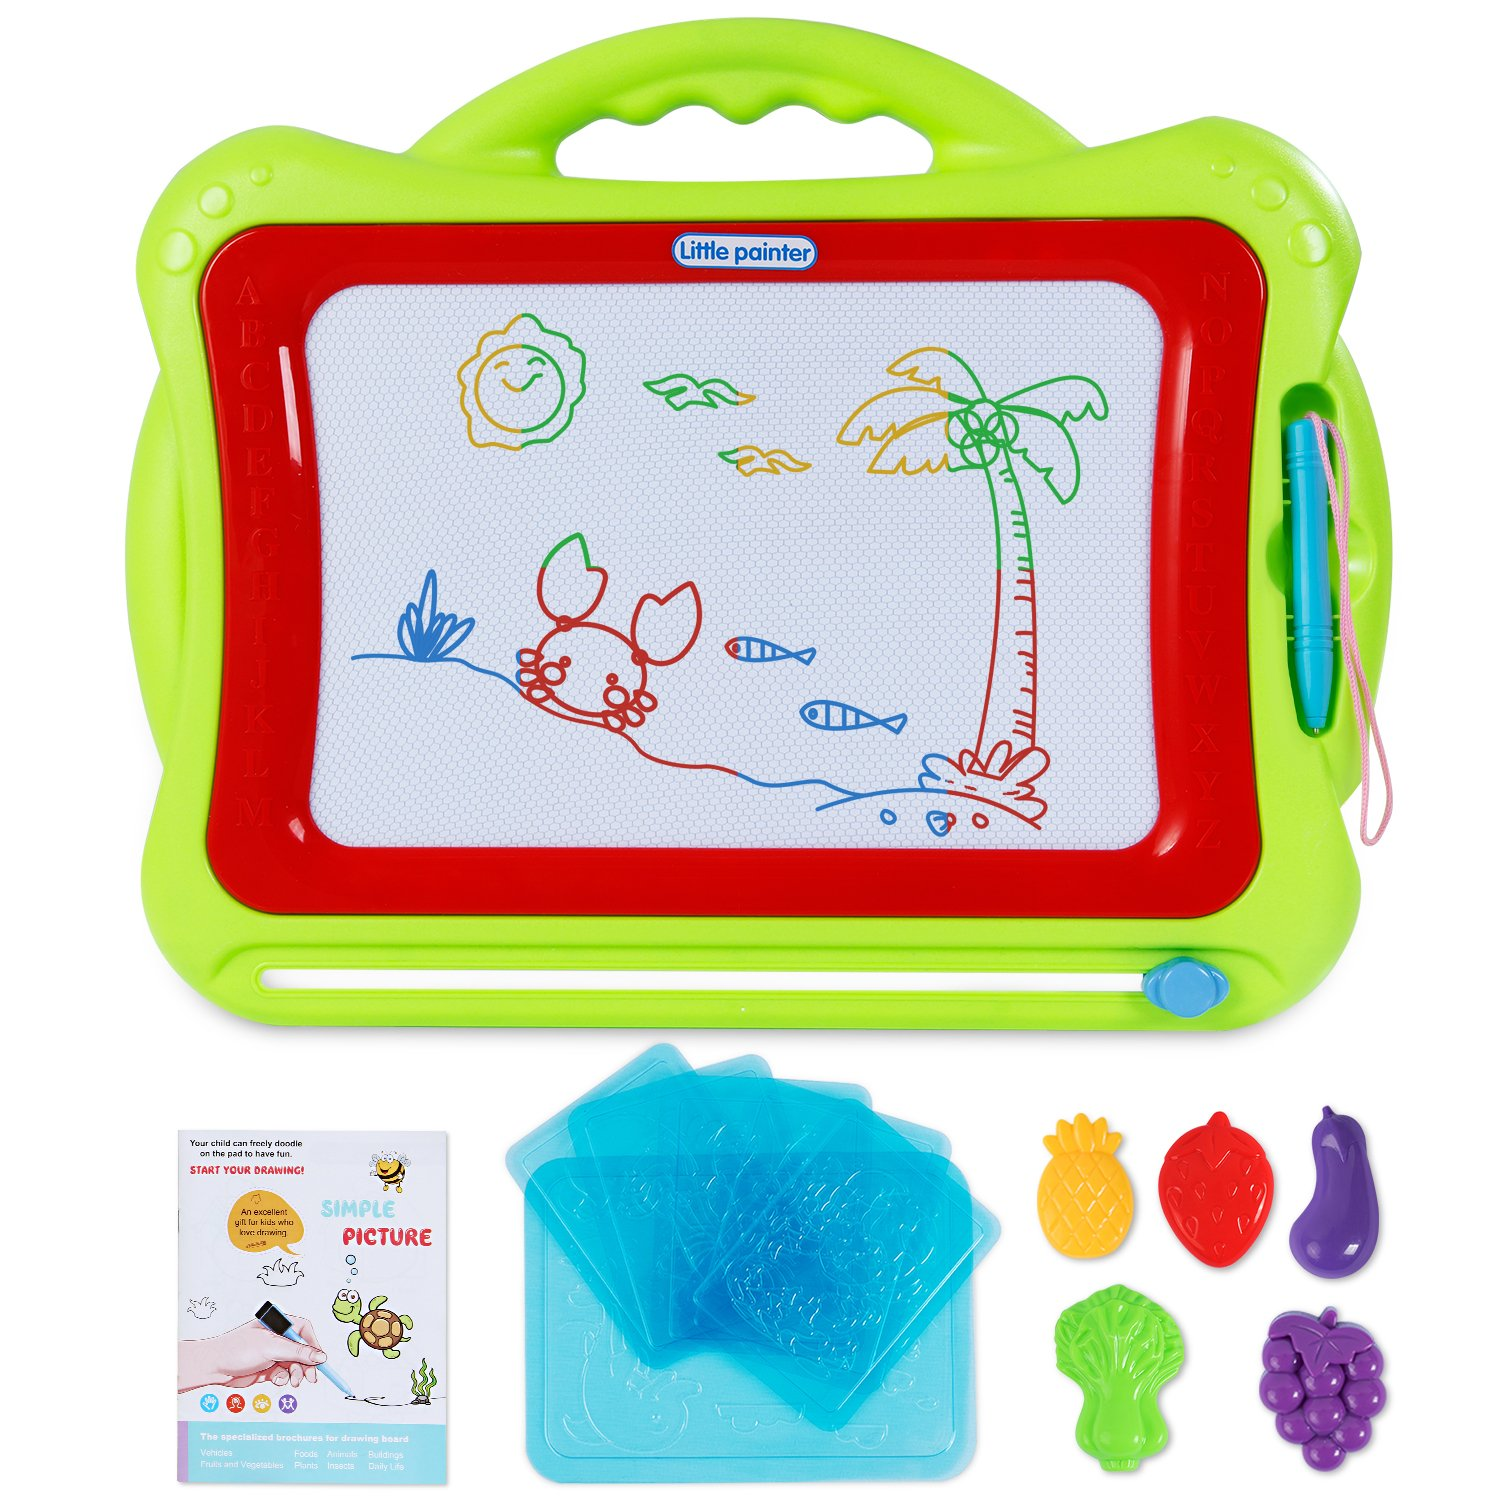 SGILE Large Magnetic Drawing Board for Toddler Kids Preschooler, 16.5X13.2  Erasable Non-Toxic Magna Doodle Drawing Sketching Pad Tablet for Writing Painting Drawing Learning Development, Green